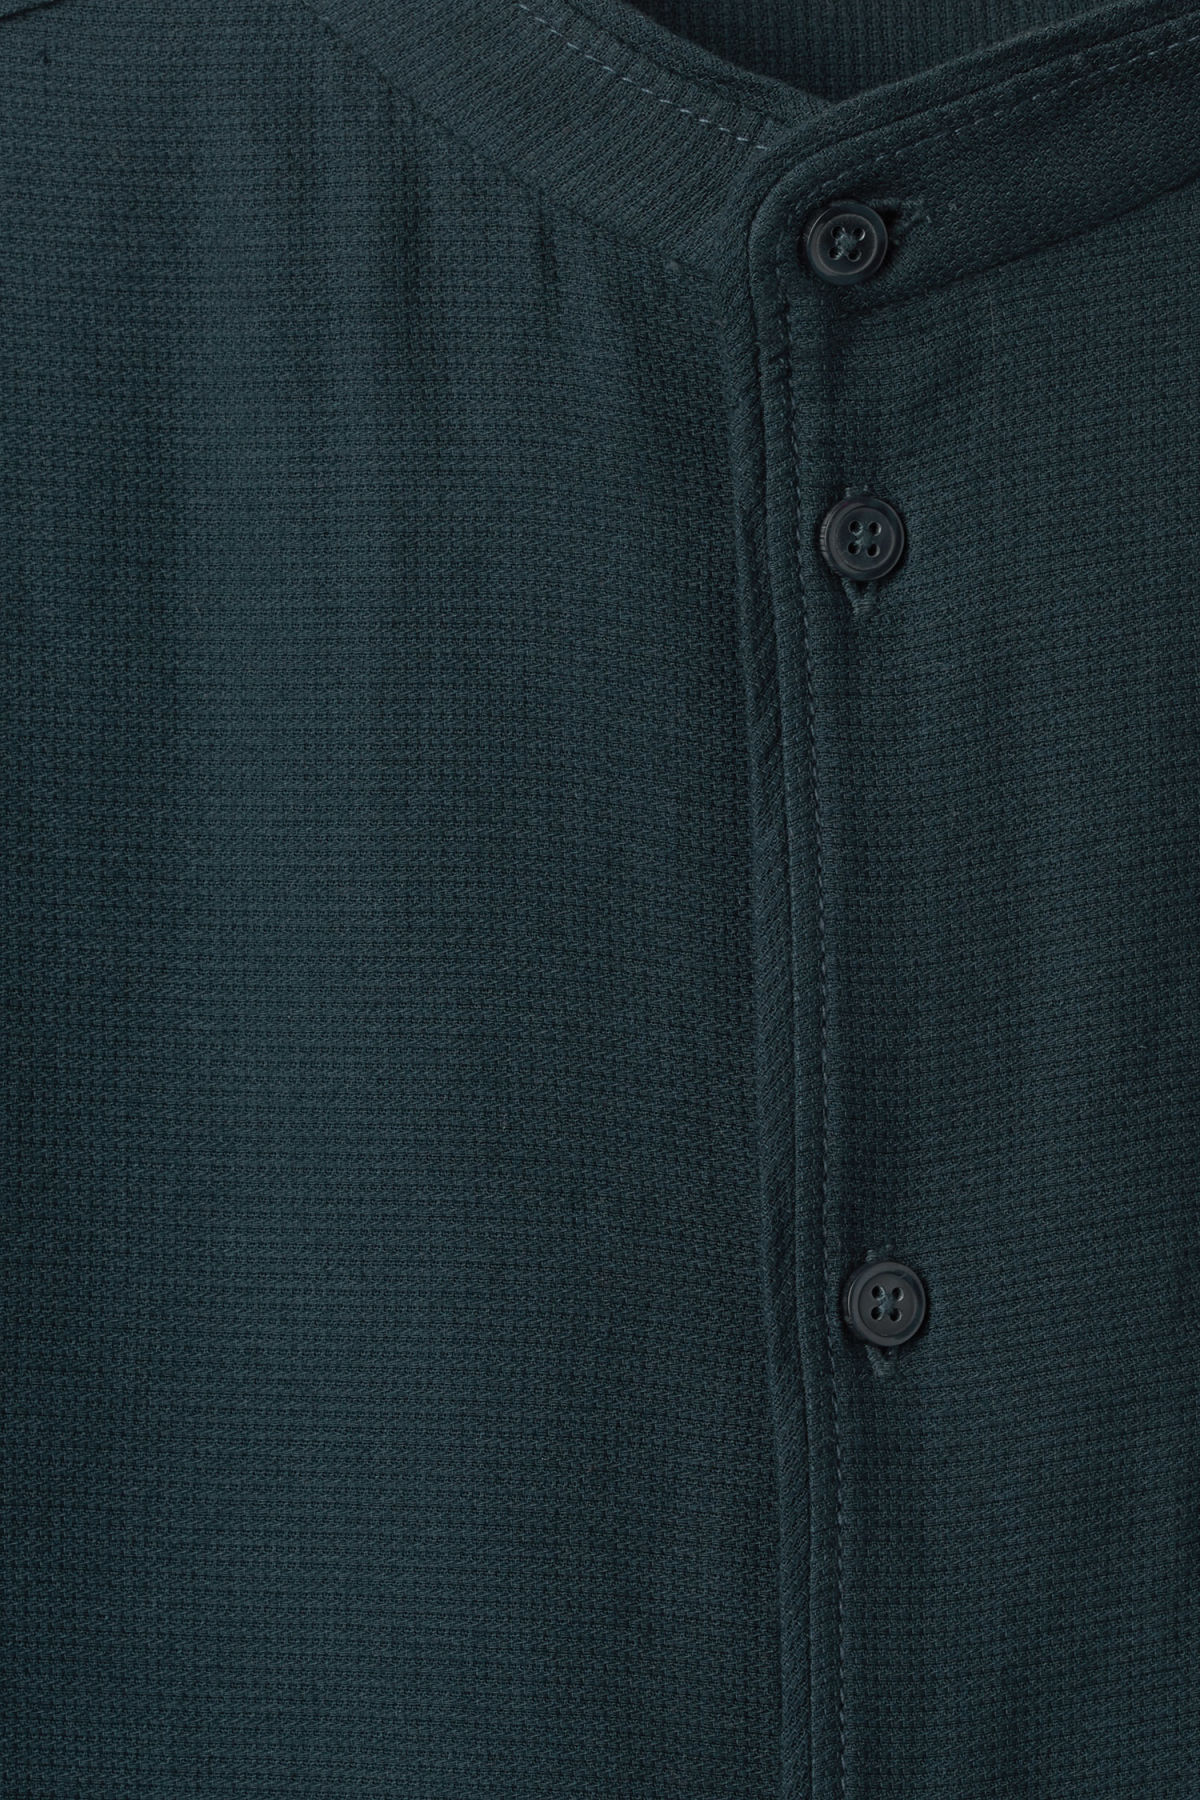 Detailed image of Weekday hunt shirt in turquoise